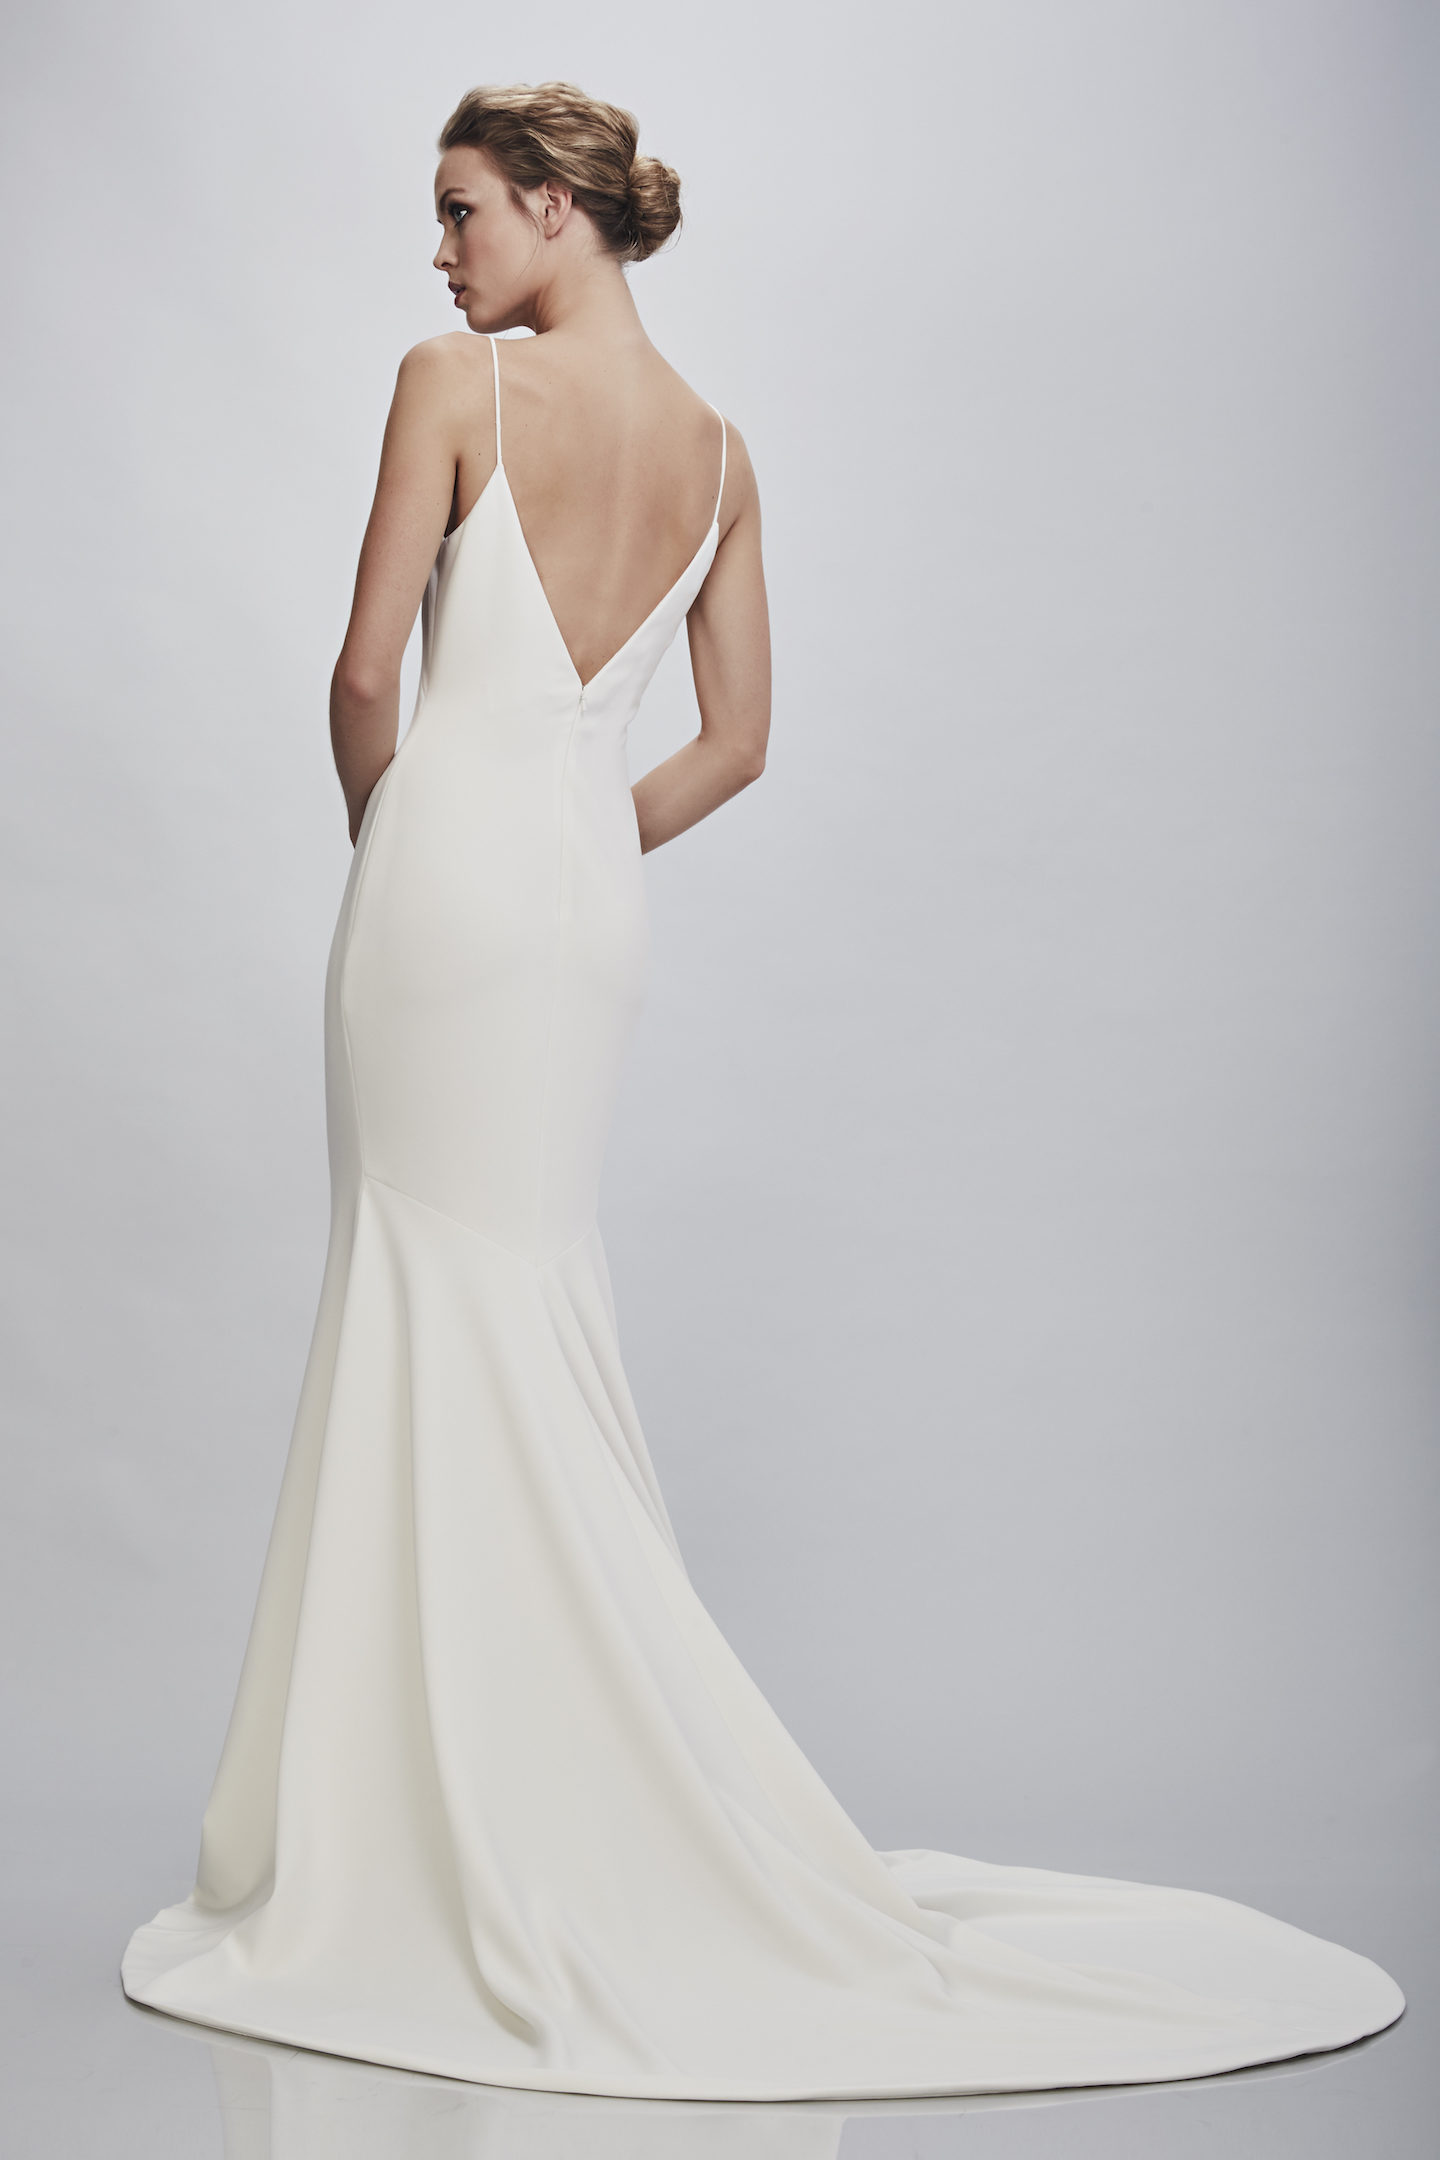 Bruna - Theia Couture Bridal available at Maggie Louise Bridal